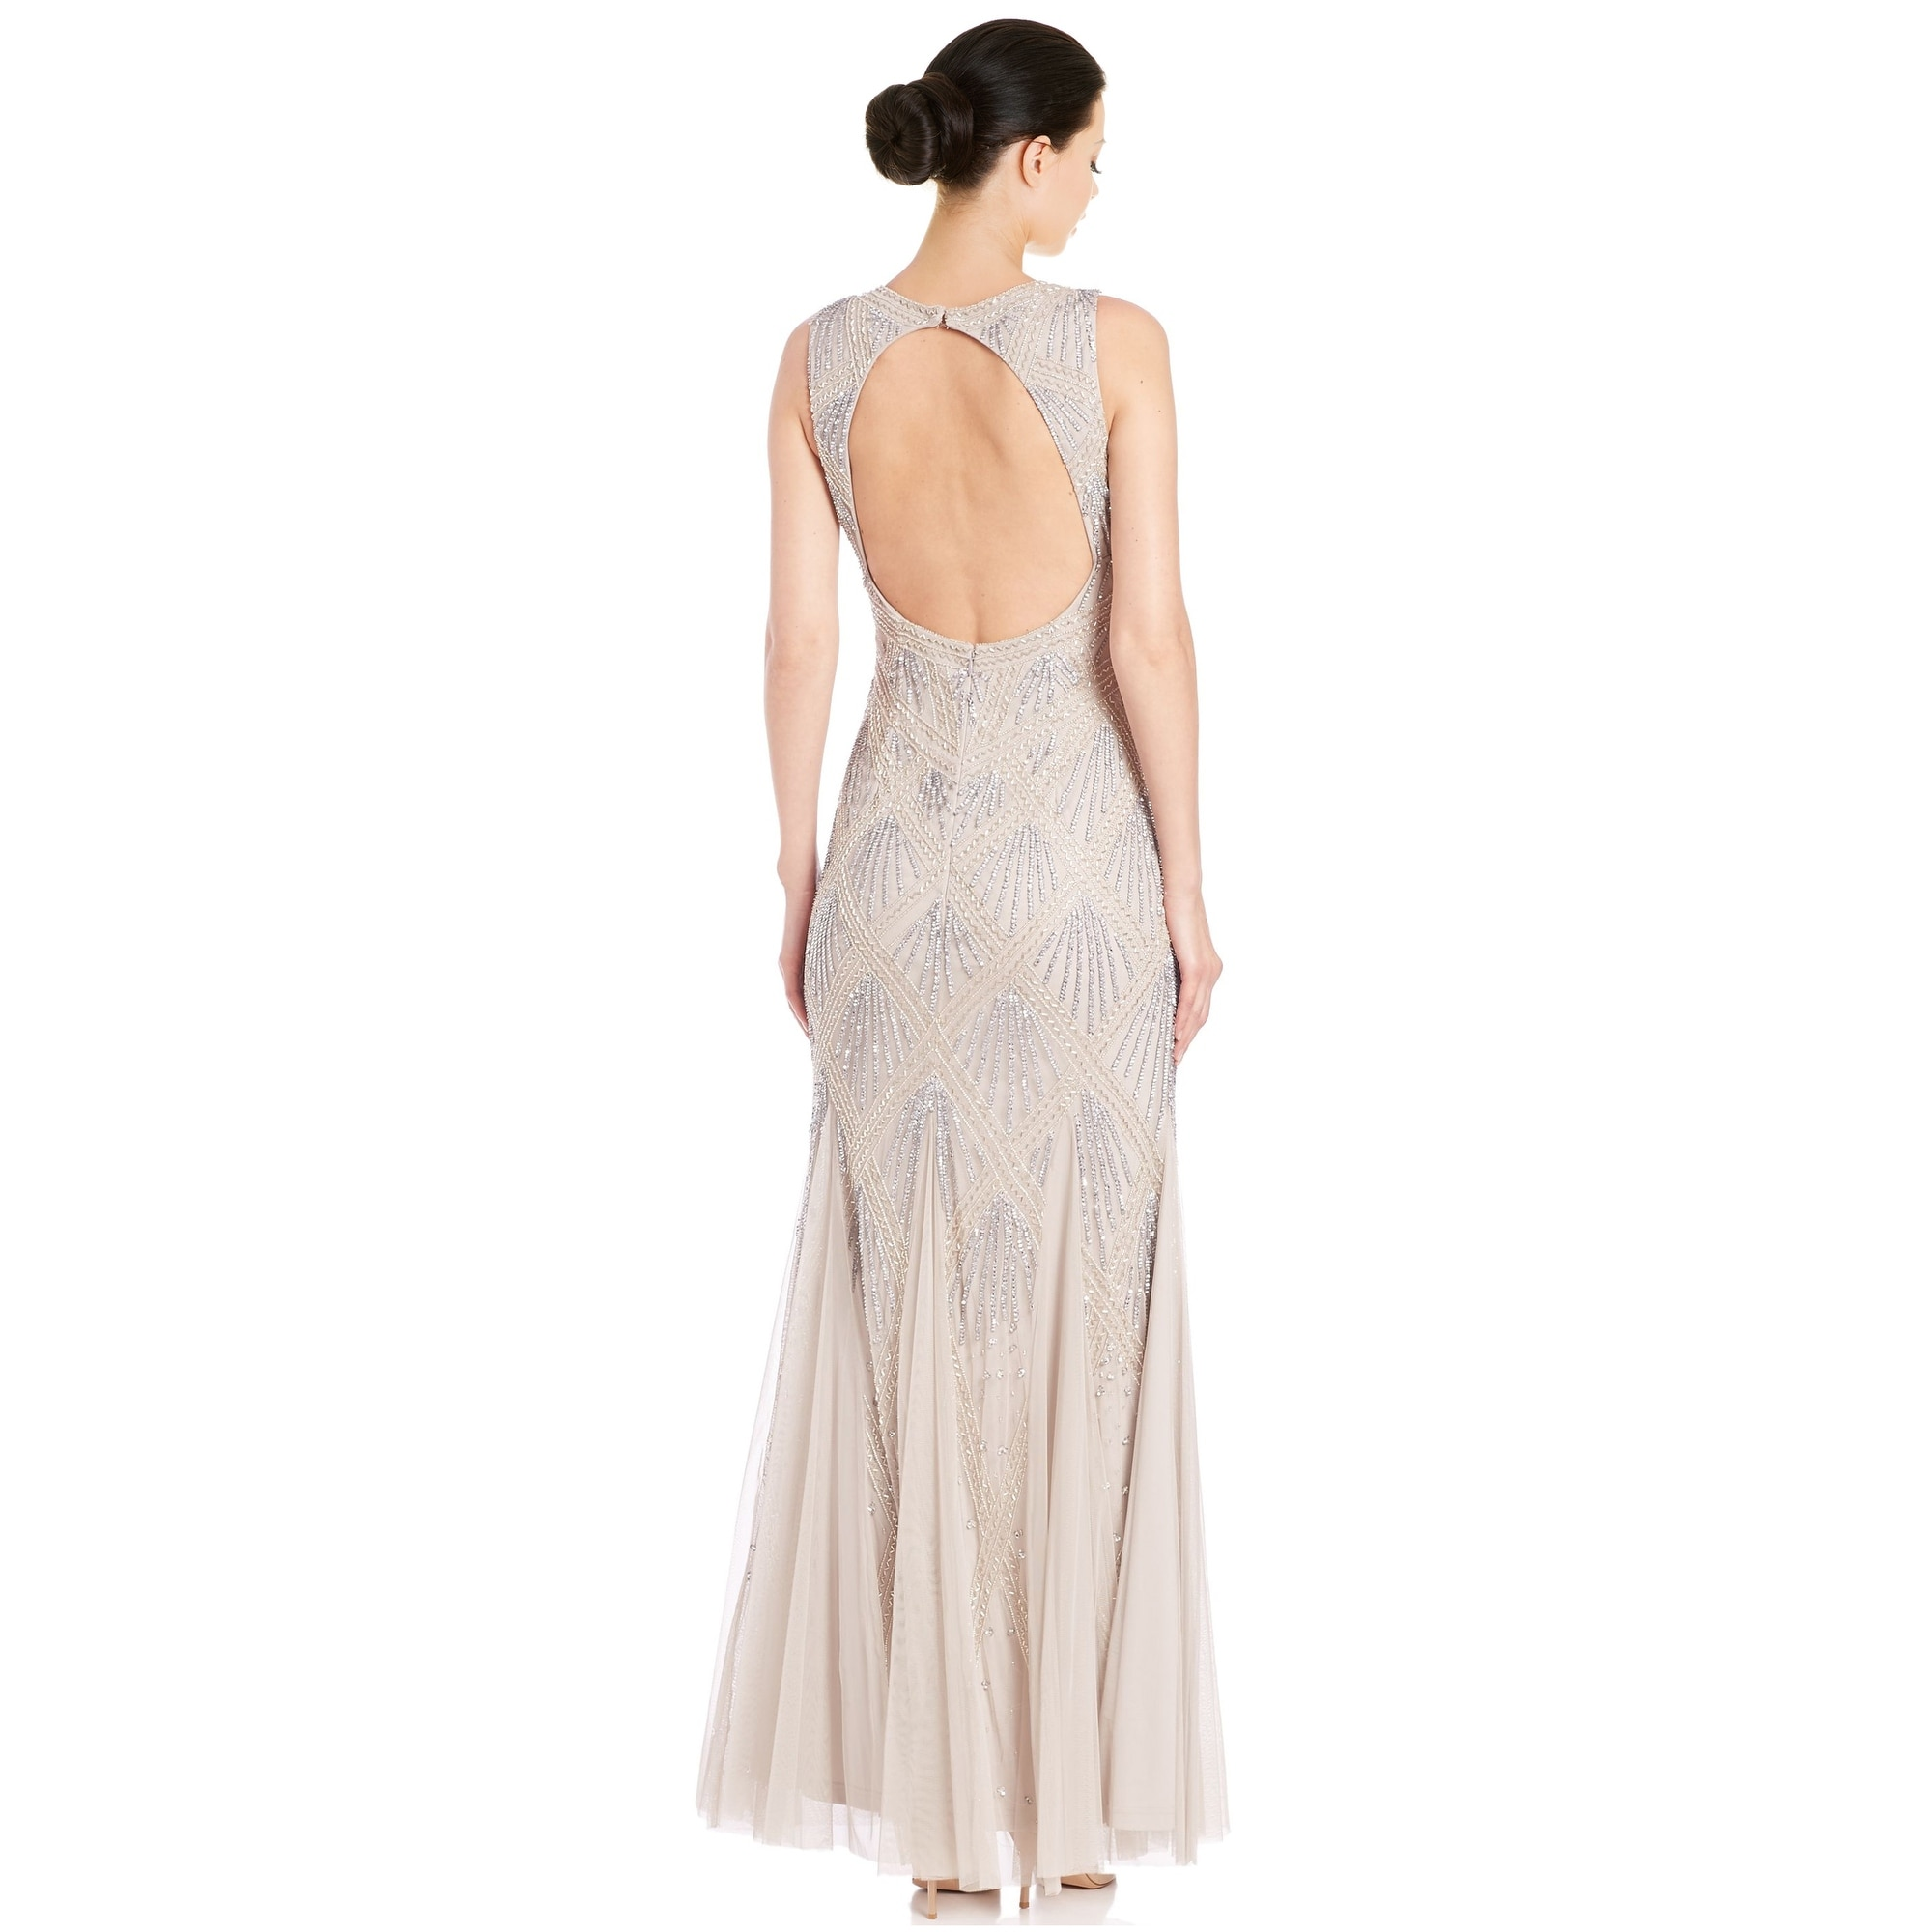 Aidan Mattox Beaded Godet Evening Gown Dress - Free Shipping Today ...